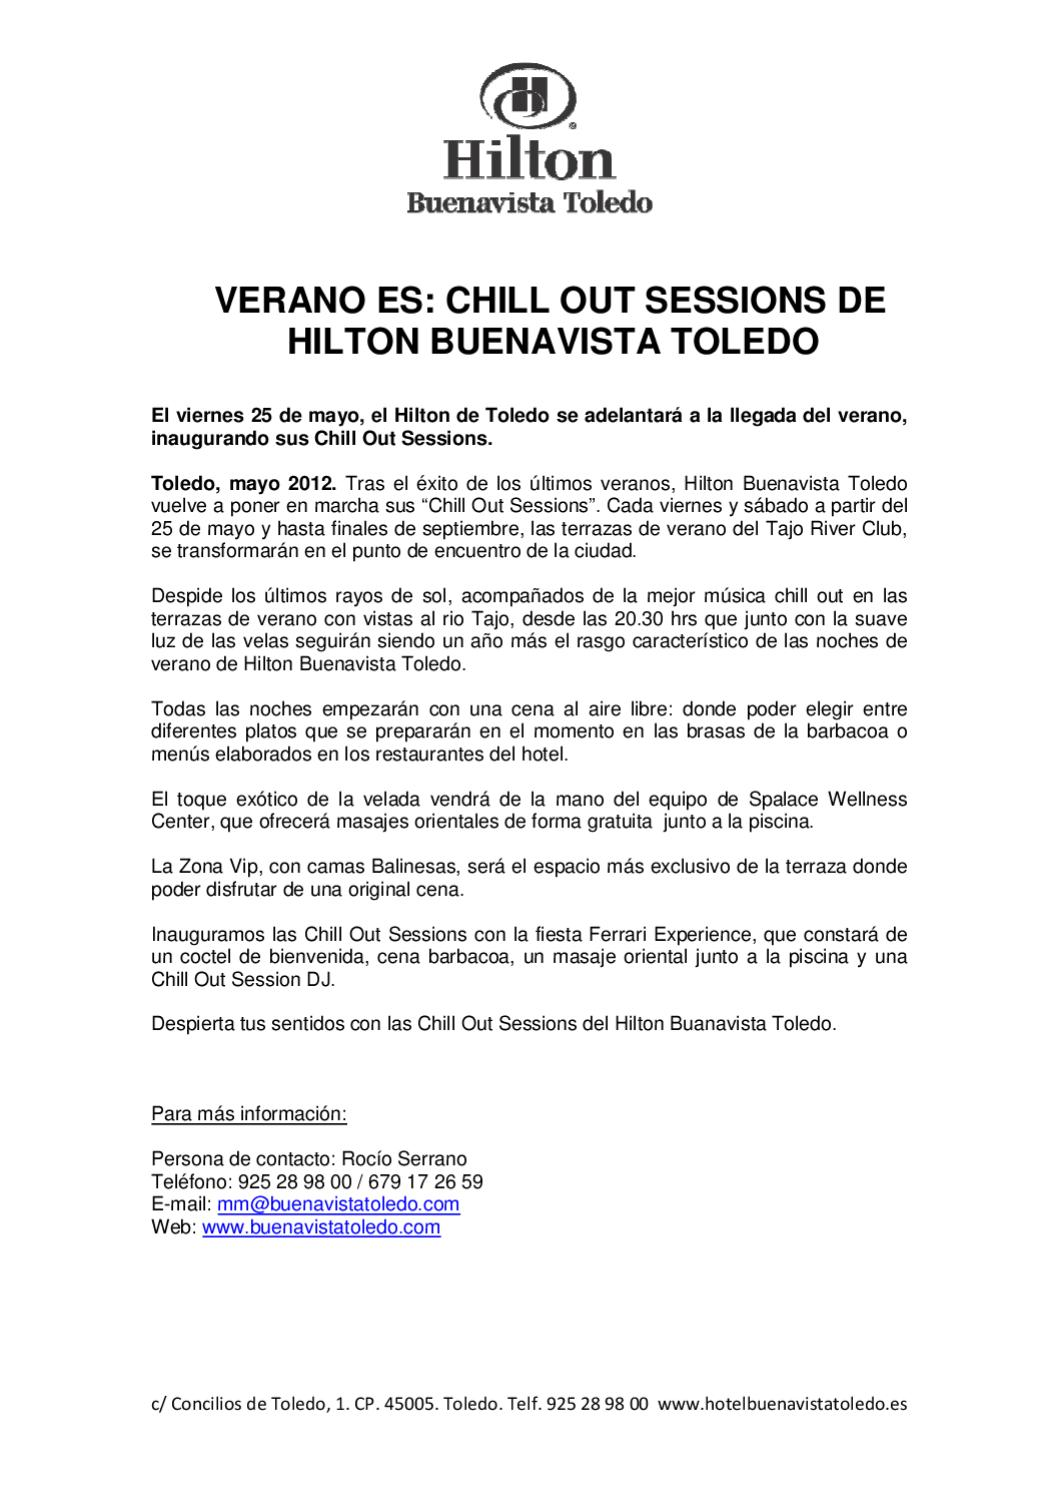 Verano Es Chill Out Sessions De Hilton Buenavista Toledo By